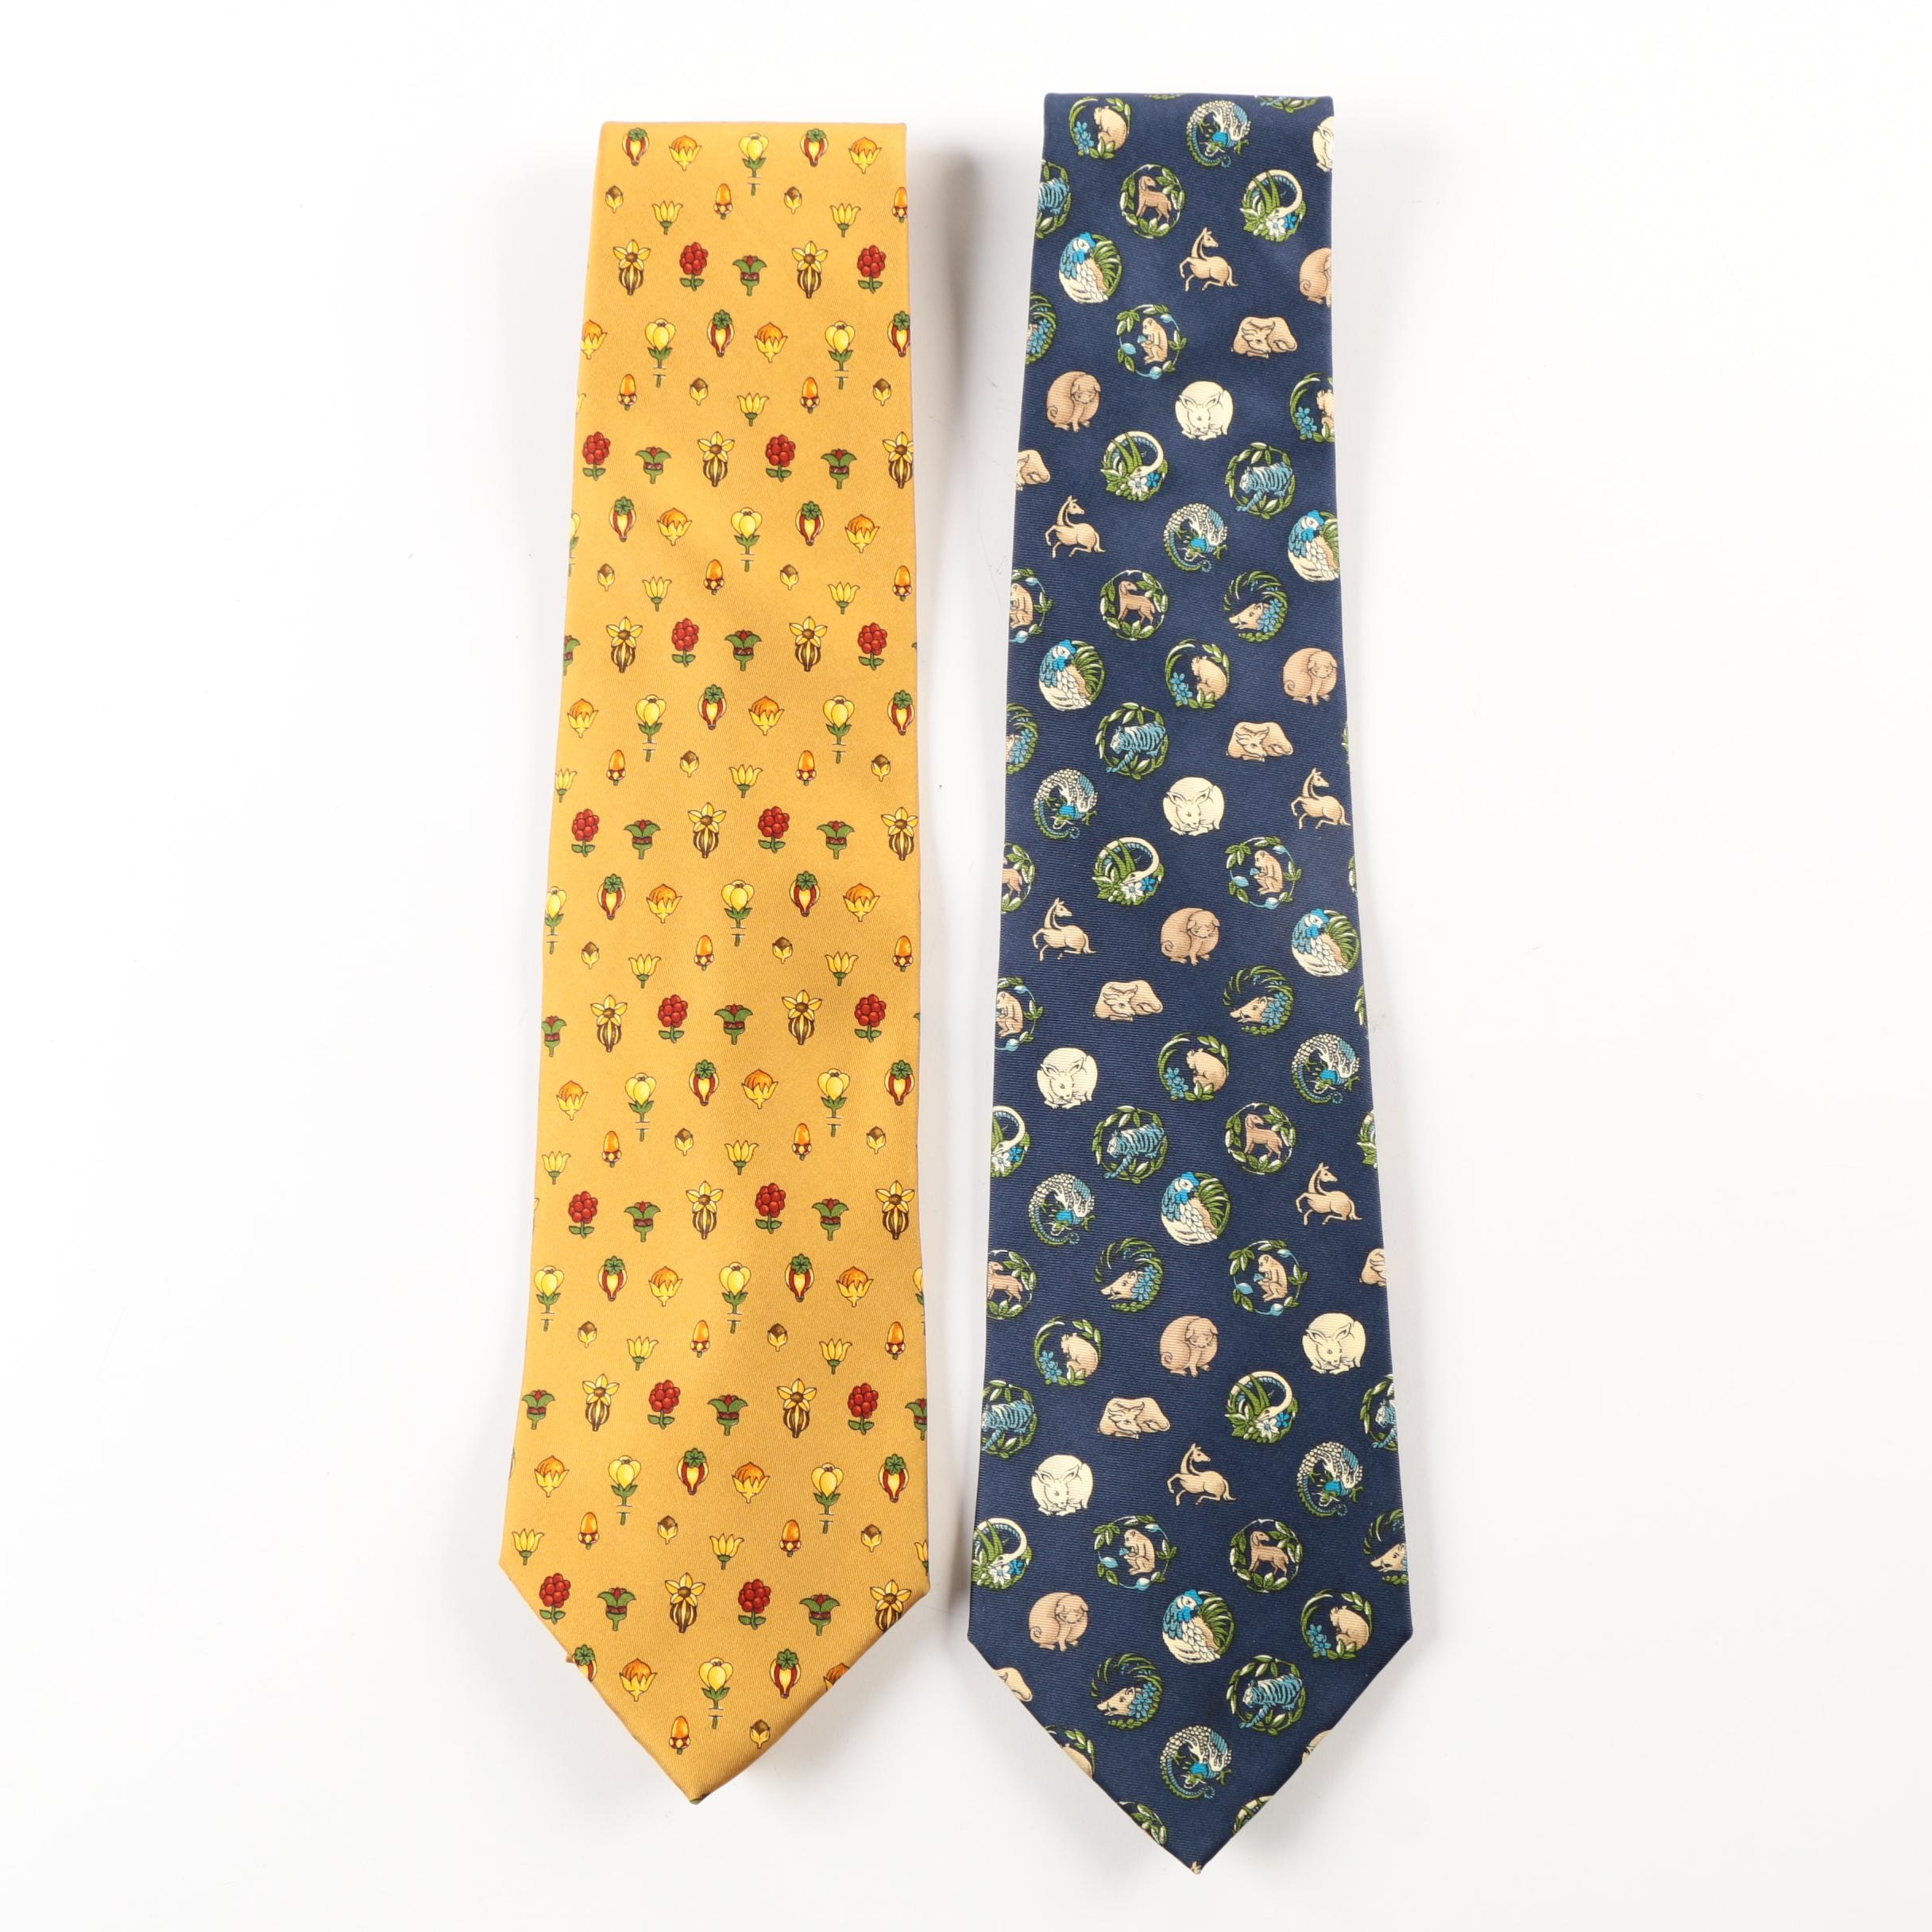 Salvatore Ferragamo Silk Ties